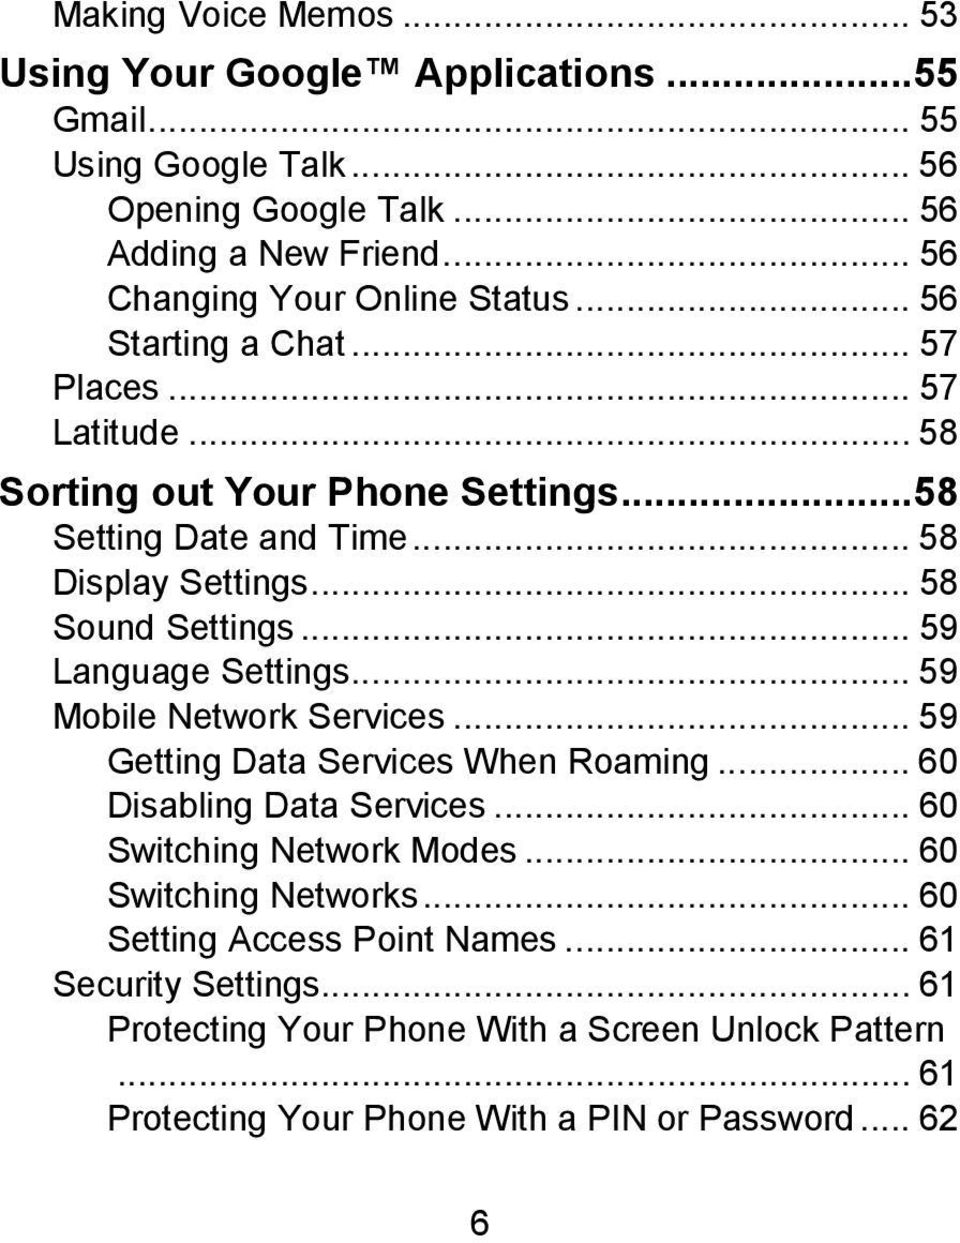 .. 58 Sound Settings... 59 Language Settings... 59 Mobile Network Services... 59 Getting Data Services When Roaming... 60 Disabling Data Services.